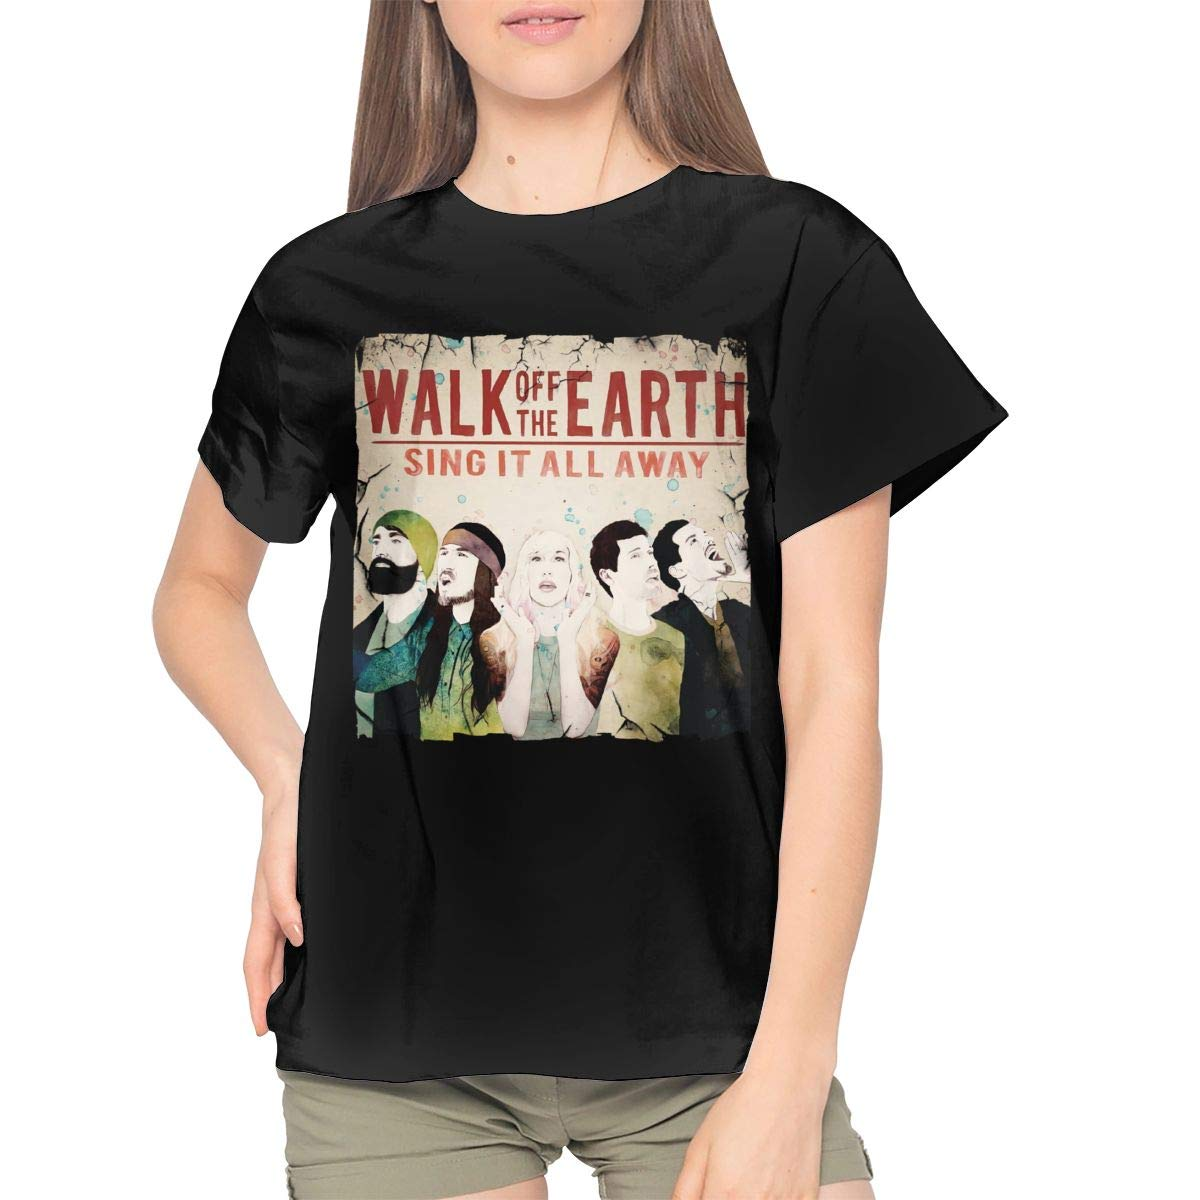 Walk Off The Earth Sing It All Away Band Music Theme Sports Short Sleeve T Shirt 9317